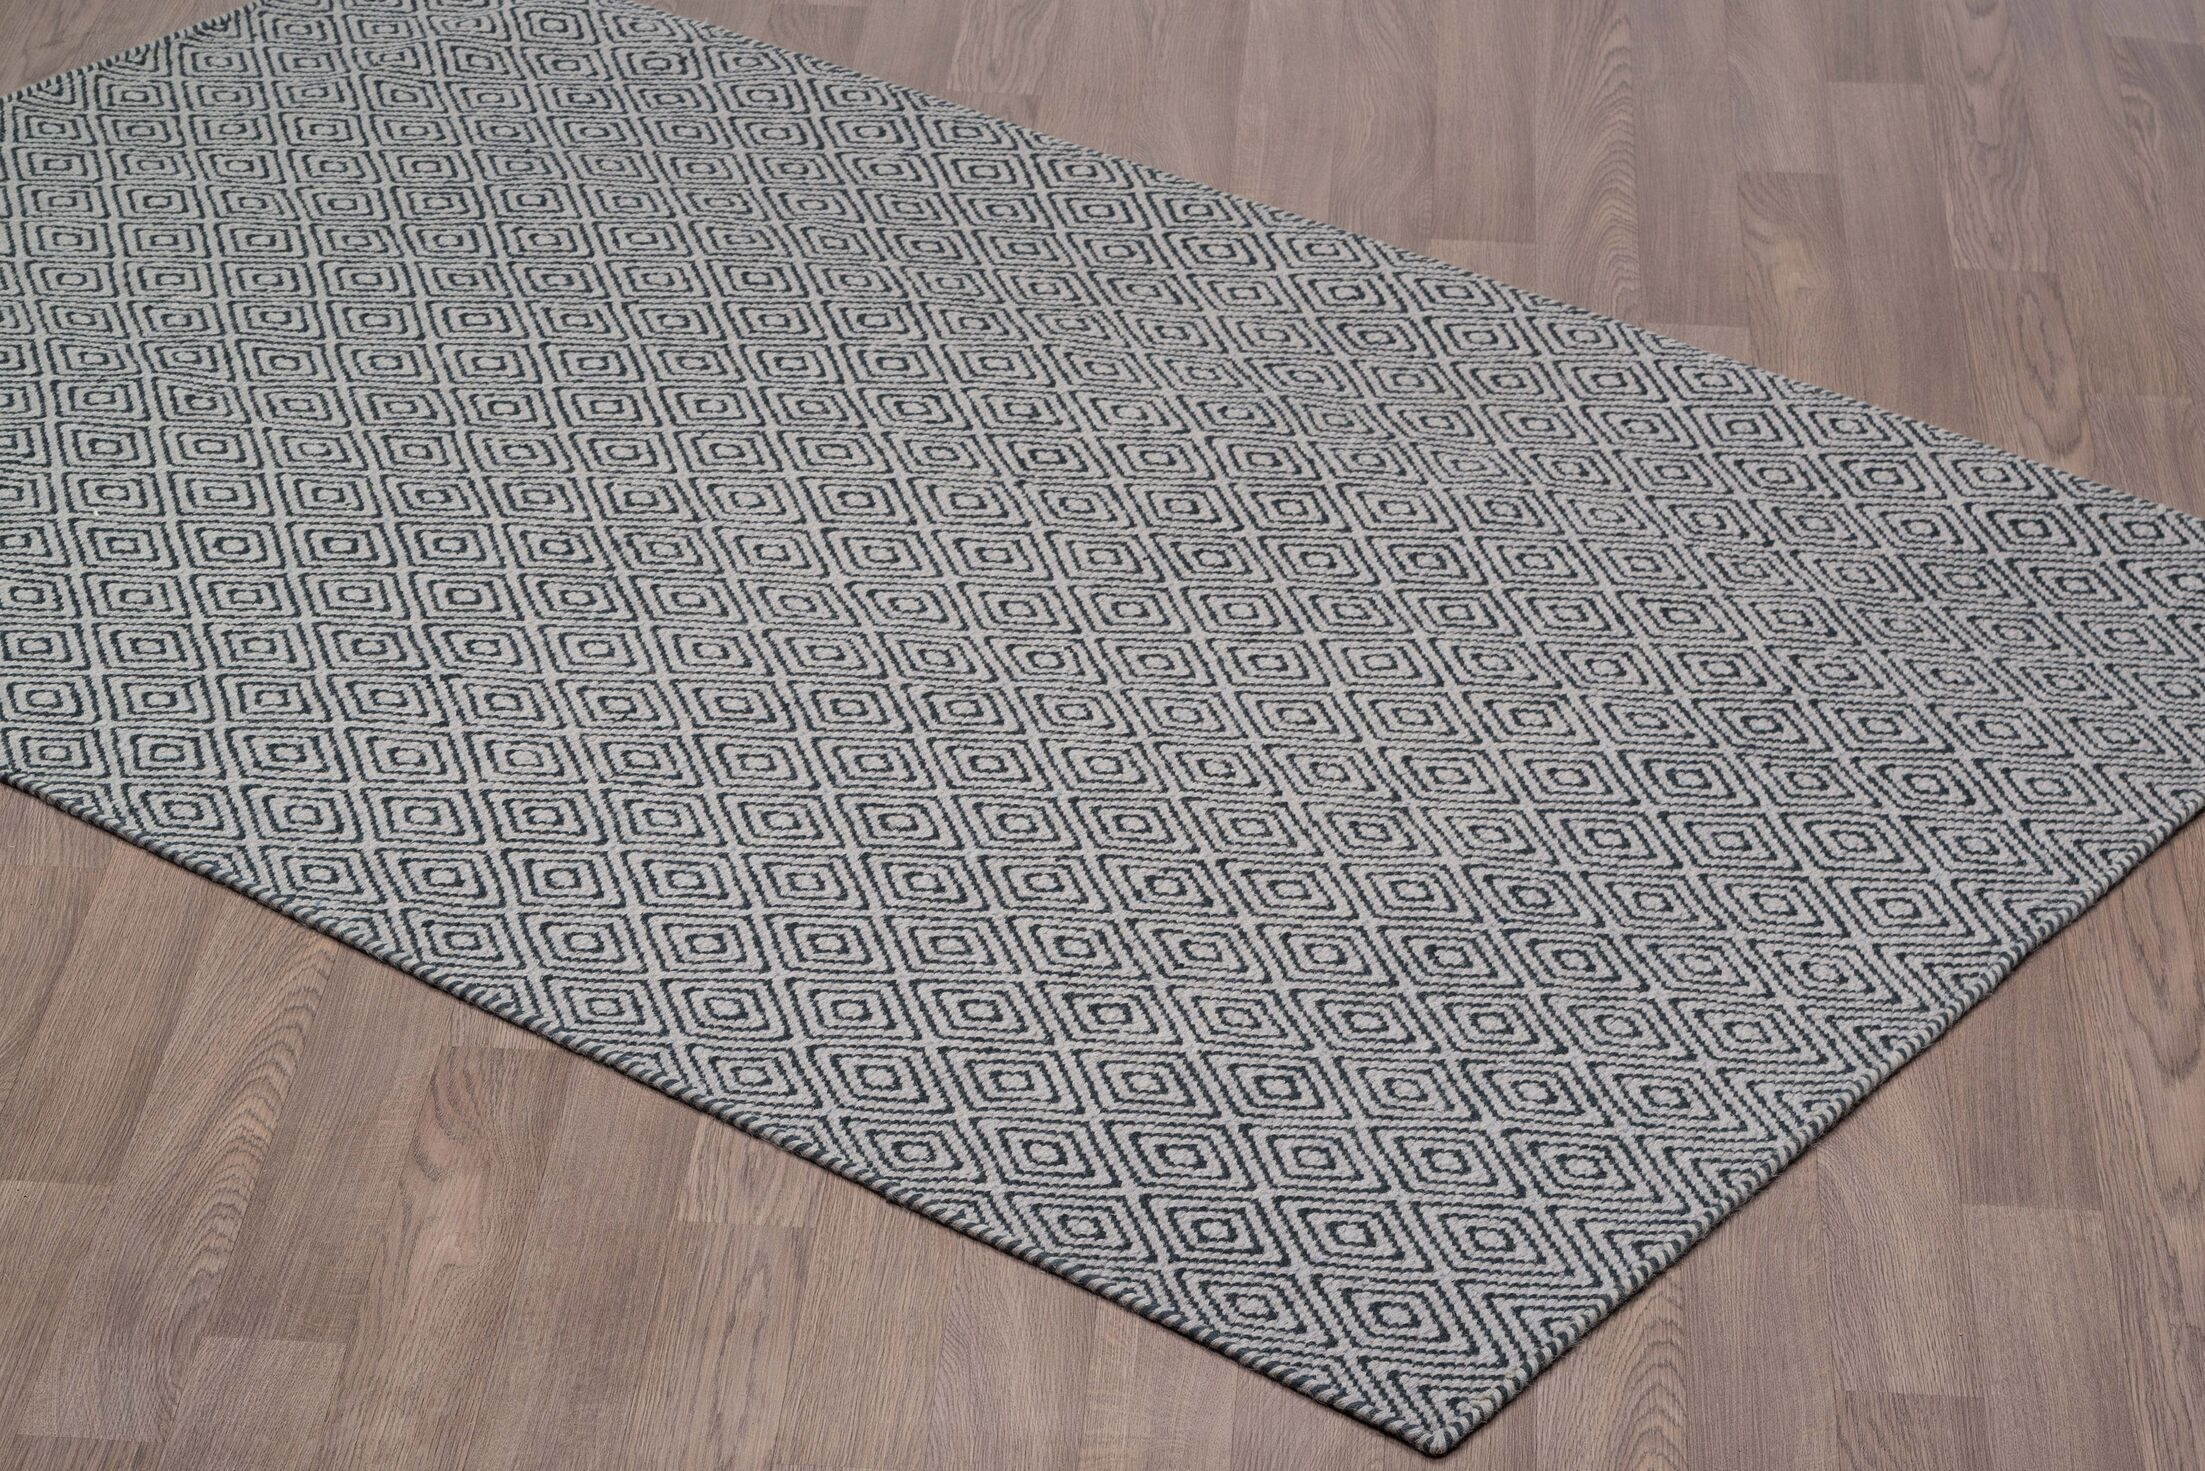 Liriano Diamond Reversible Hand-Woven Wool Gray/Black Area Rug Rug Size: Rectangle 5' x 8'